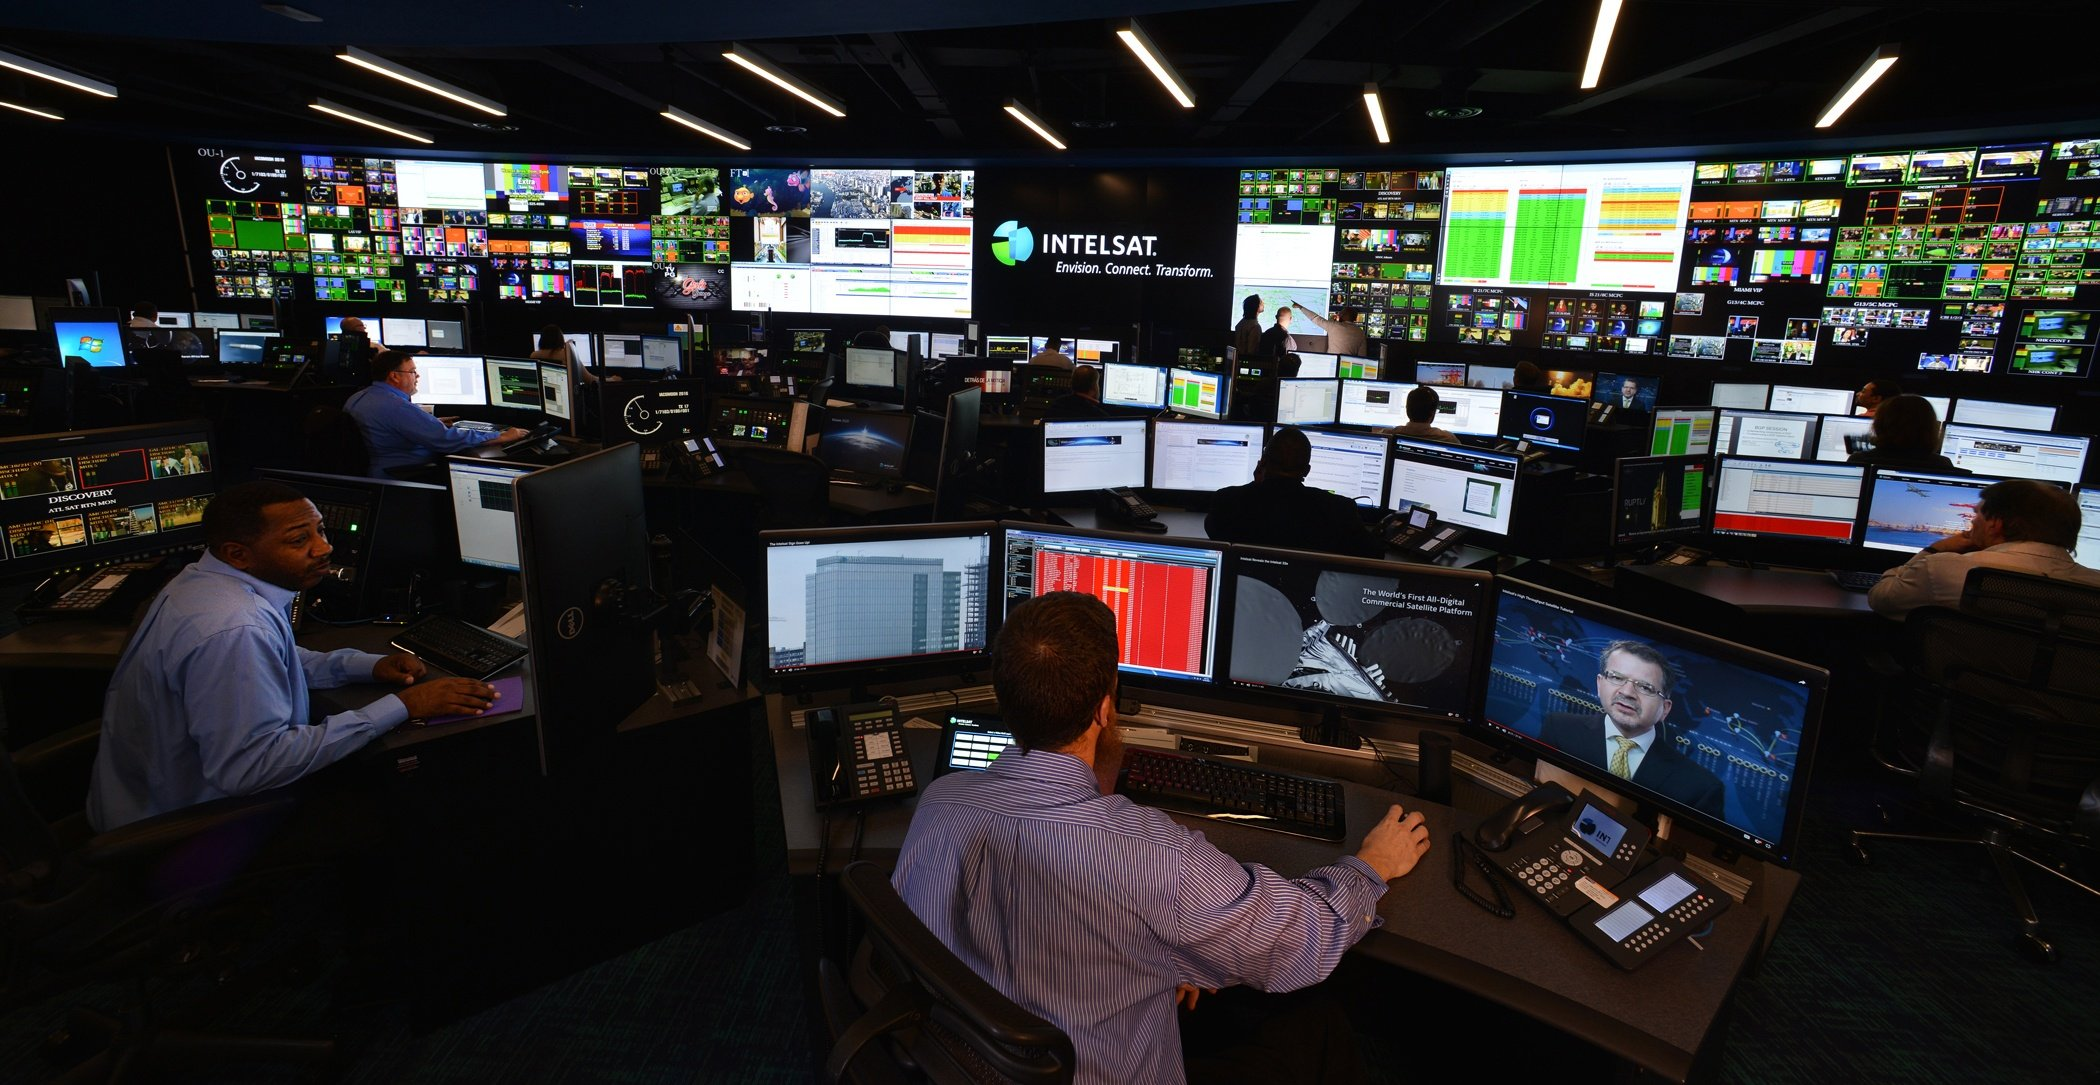 IntelSat Control Room